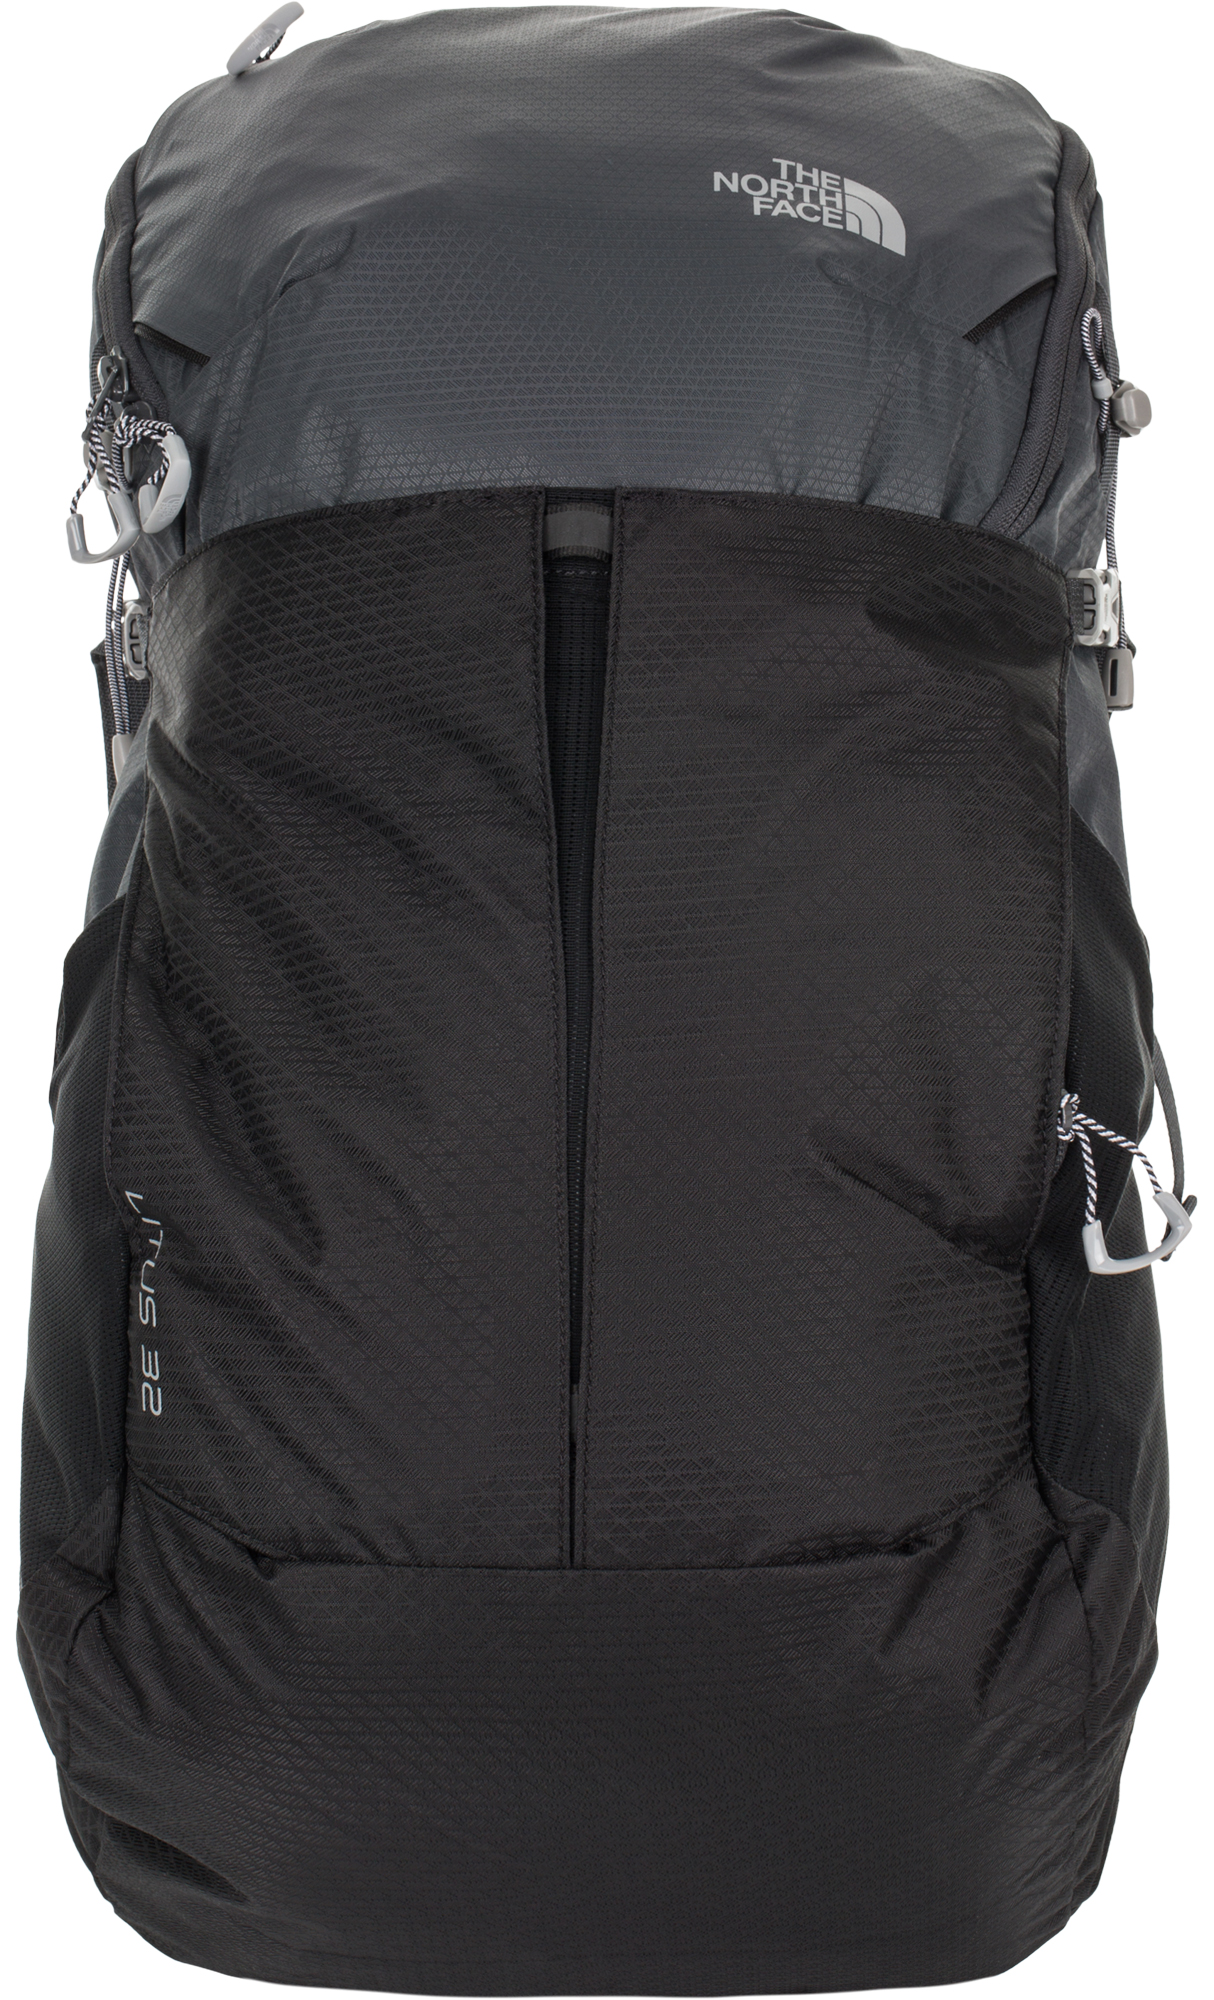 The North Face Рюкзак мужской The North Face Litus the north face рюкзак the north face terra 55